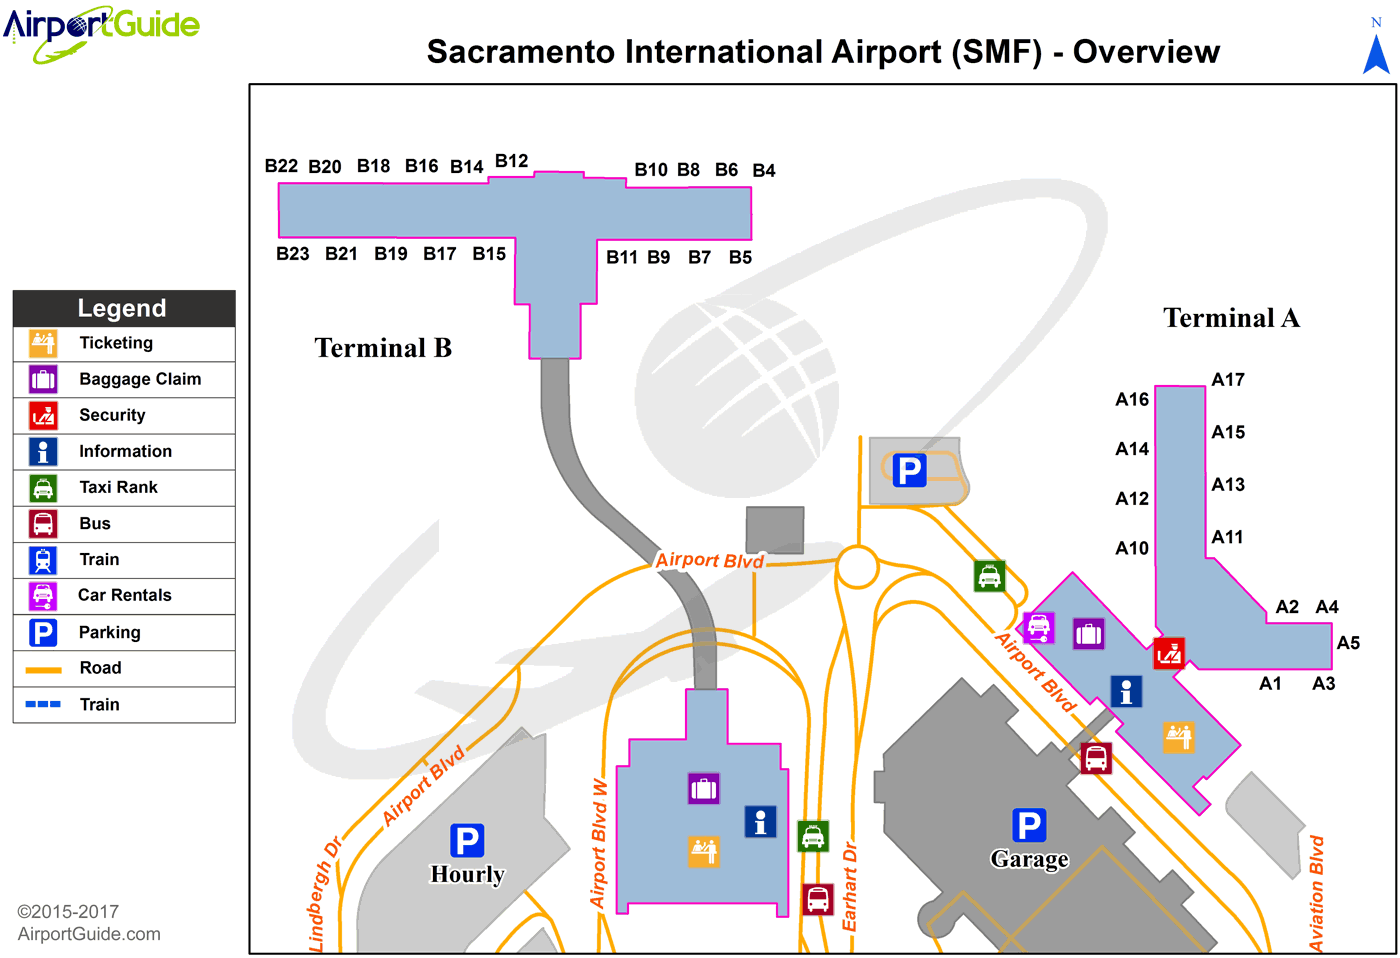 Sacramento - Sacramento International (SMF) Airport Terminal Map - Overview